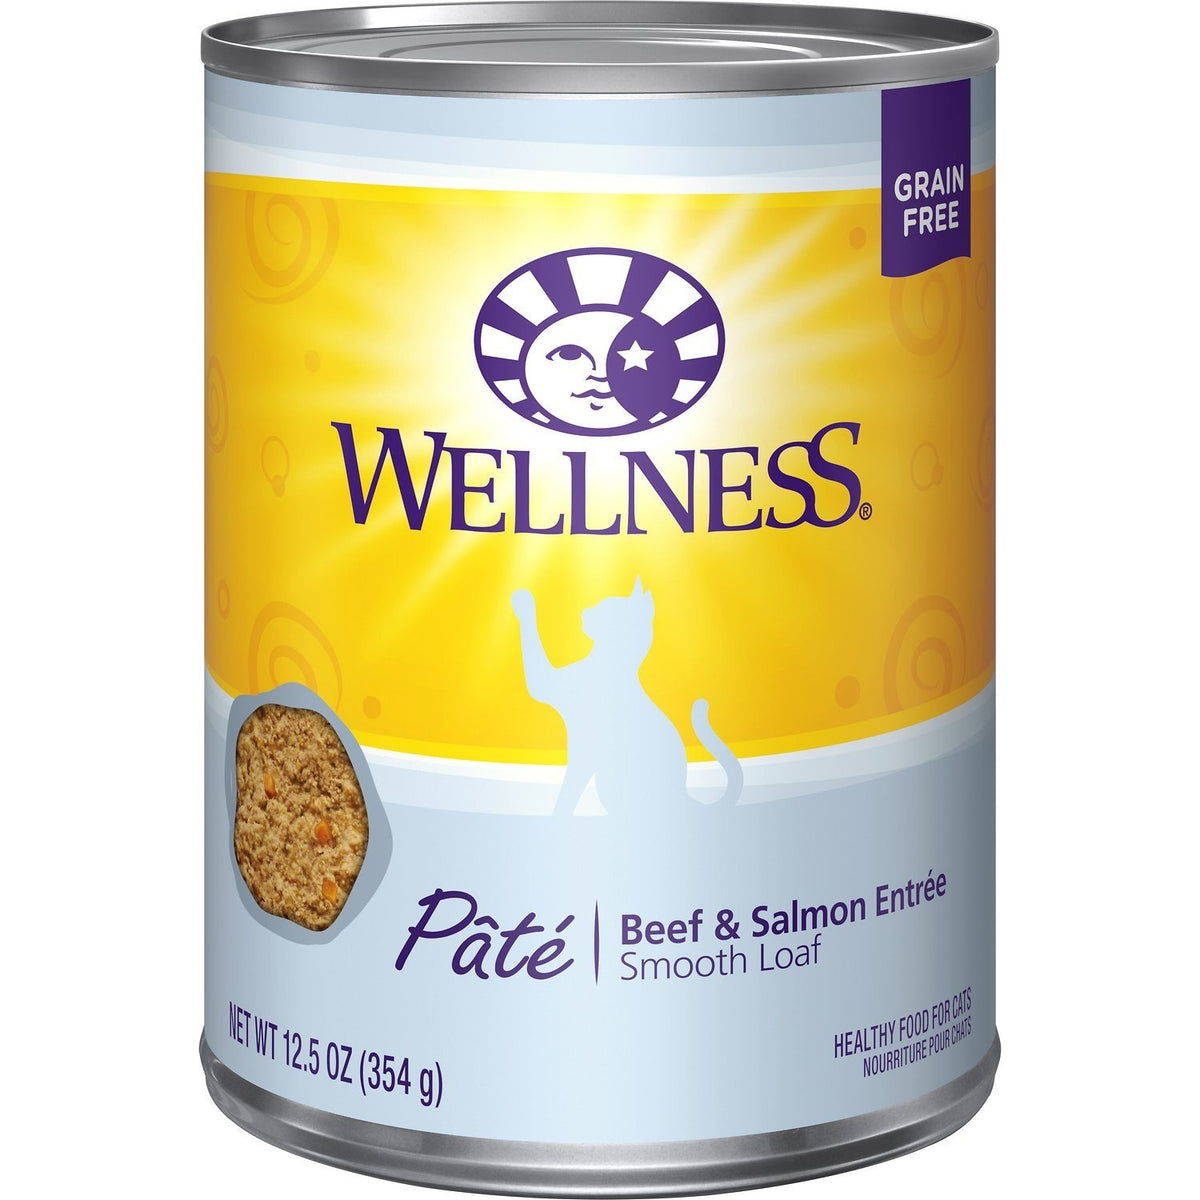 Wellness - Pâté Beef & Salmon Entrée Wet Canned Cat Food (12.5oz)